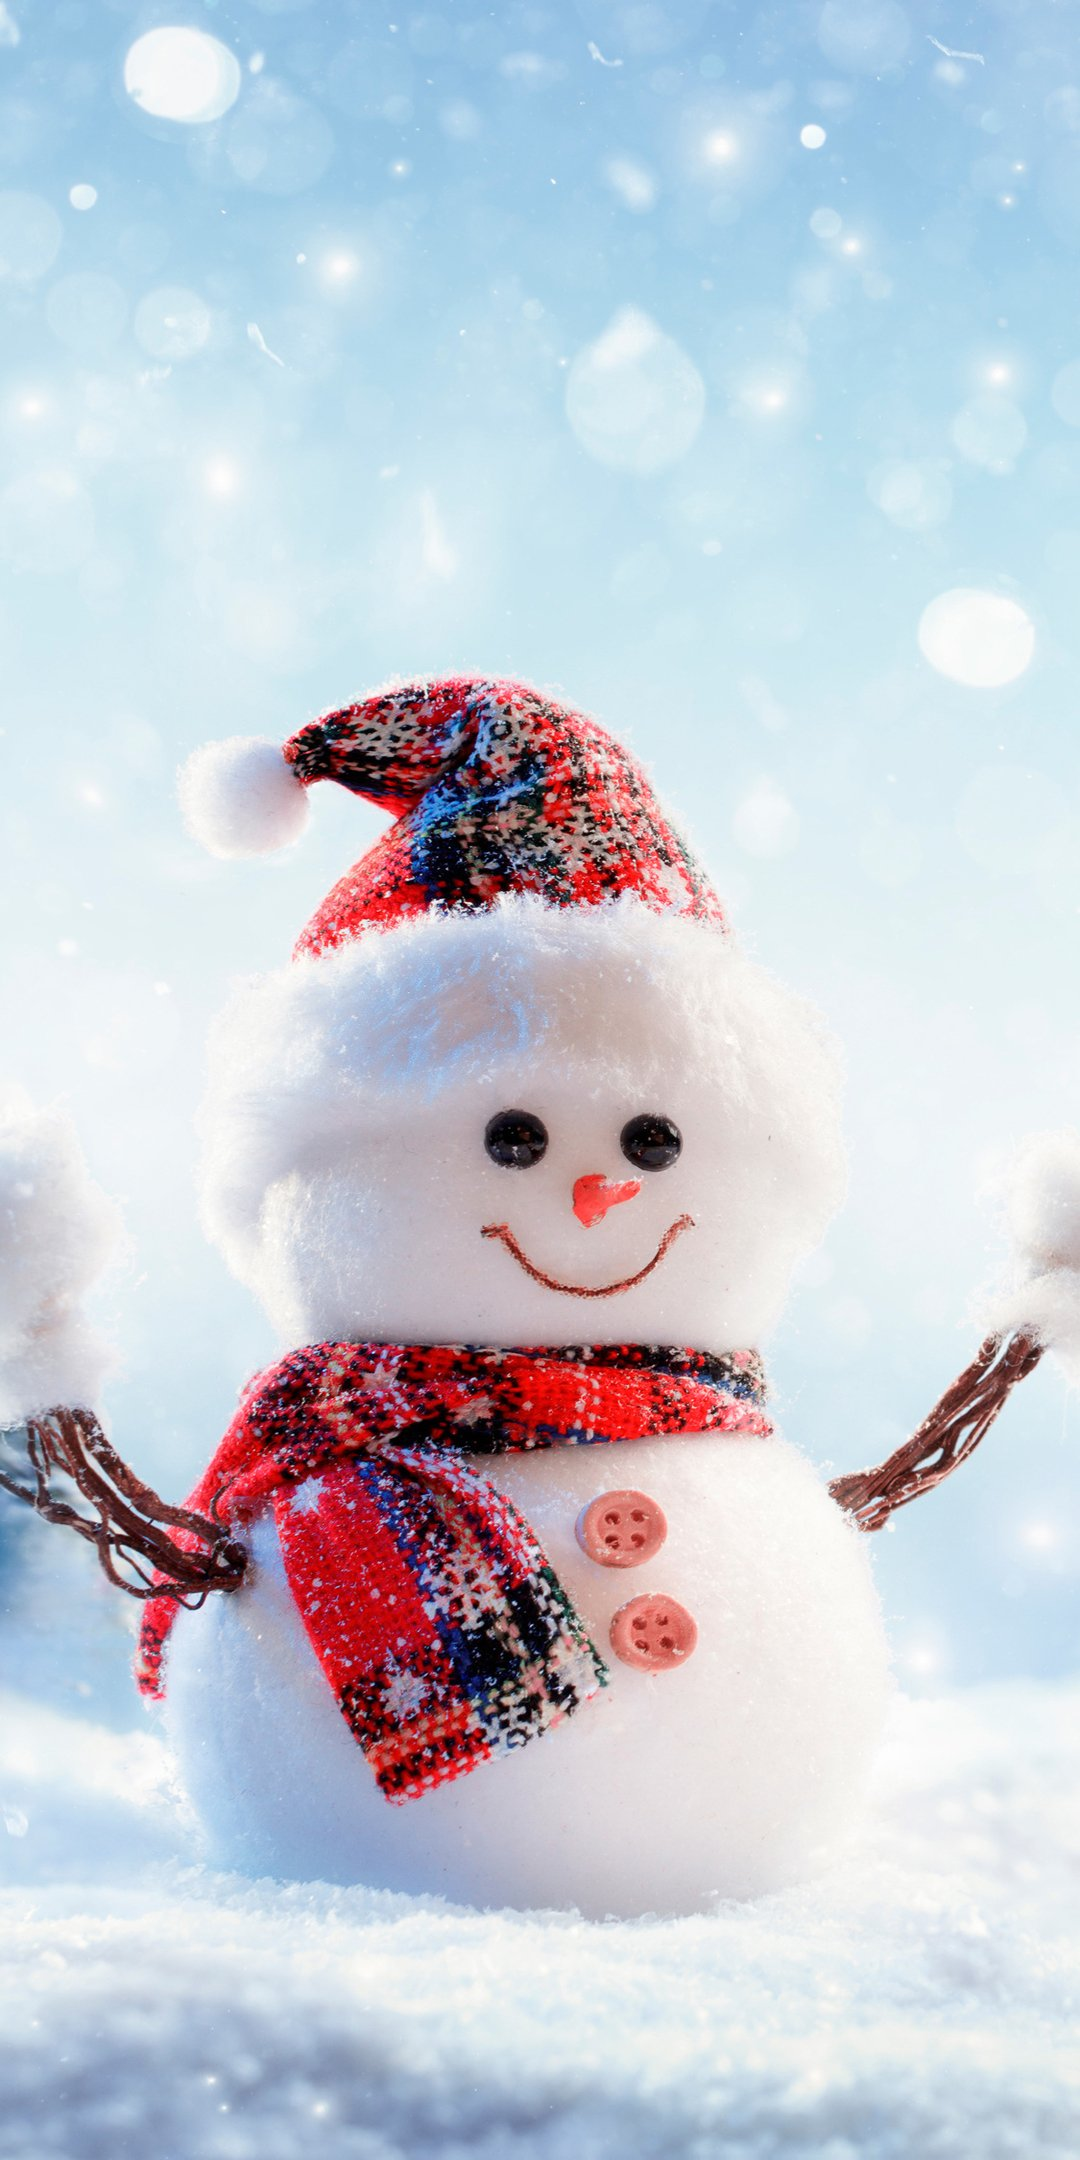 Download 140 Christmas Wallpapers for Phones (FHD+ ...